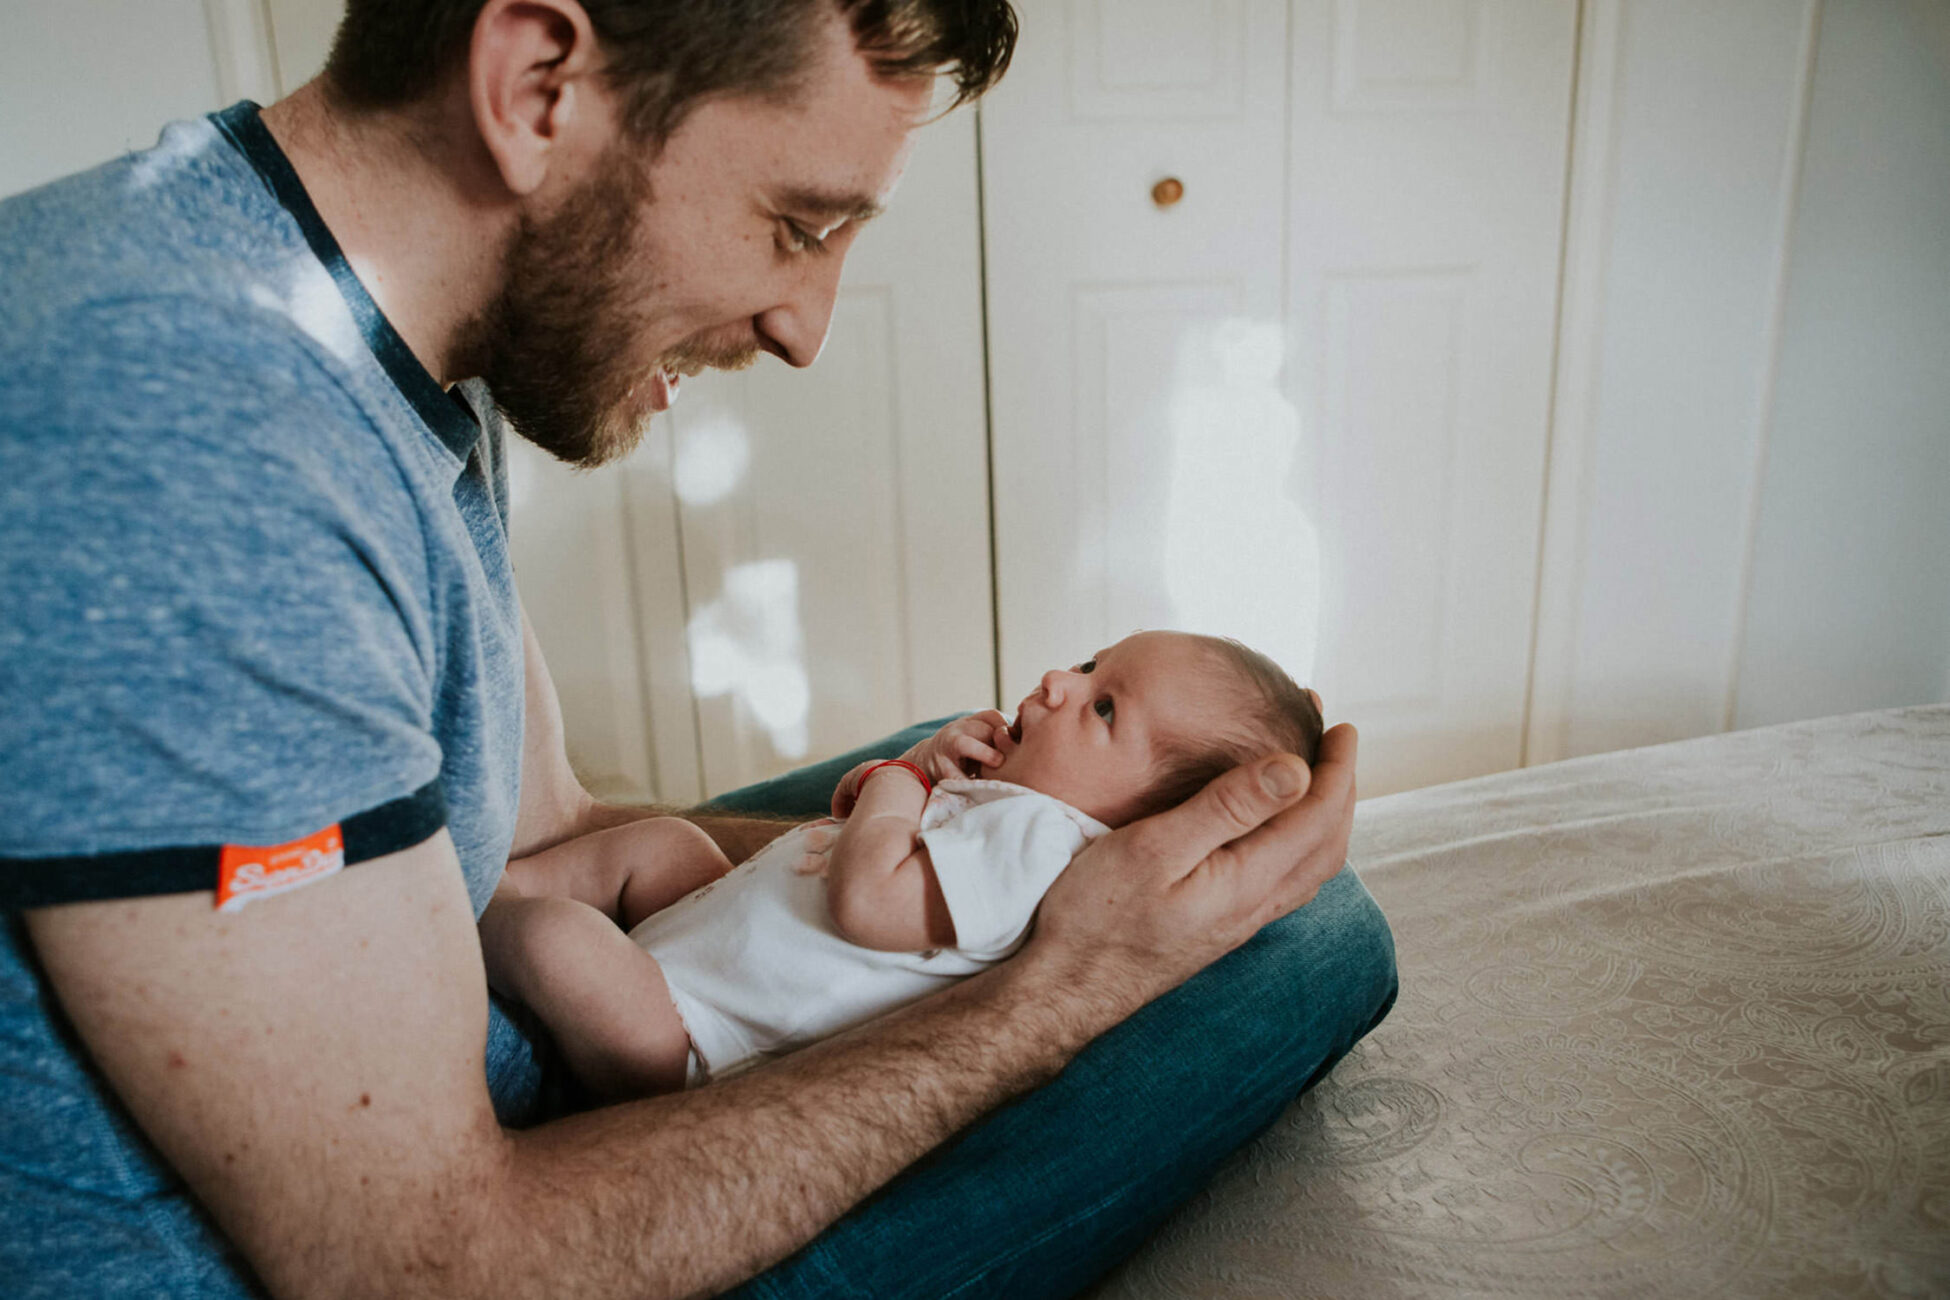 dad talking to his newborn baby girl during a newborn photoshoot